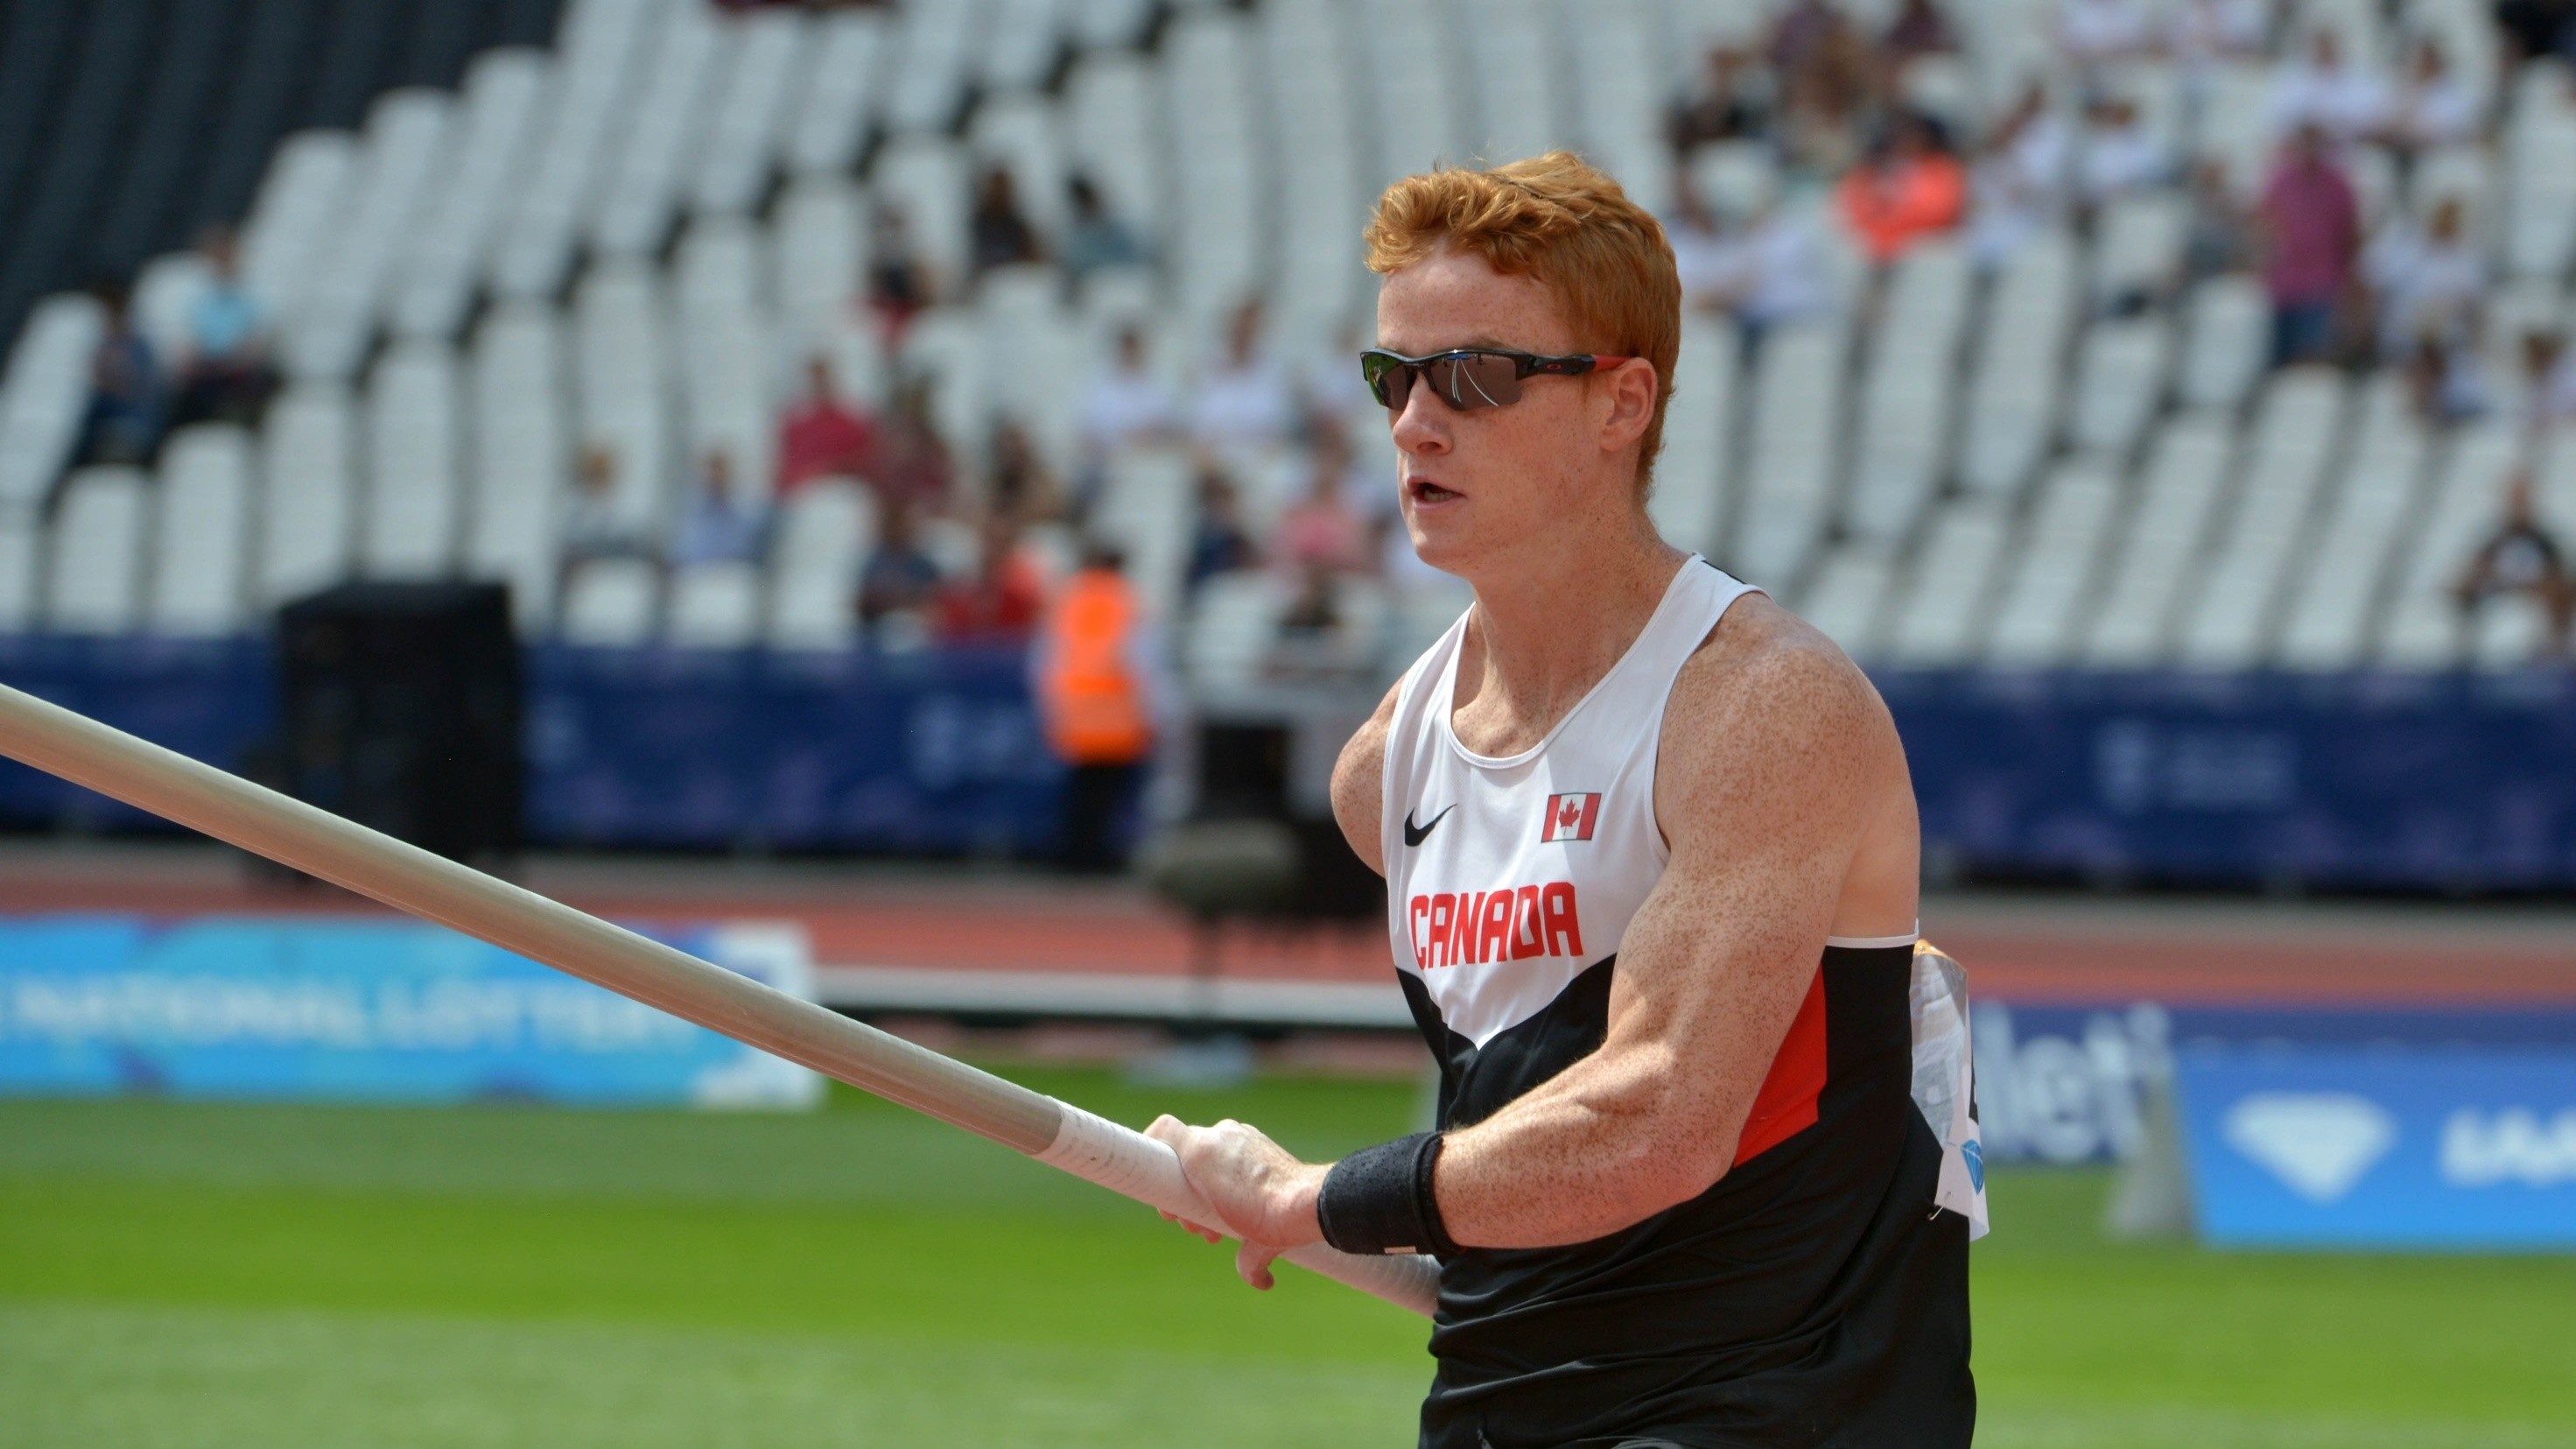 Near-Missed Connection: Cocaine Craigslist Romp Didn't Keep Canadian Pole Vaulter Out of Olympics